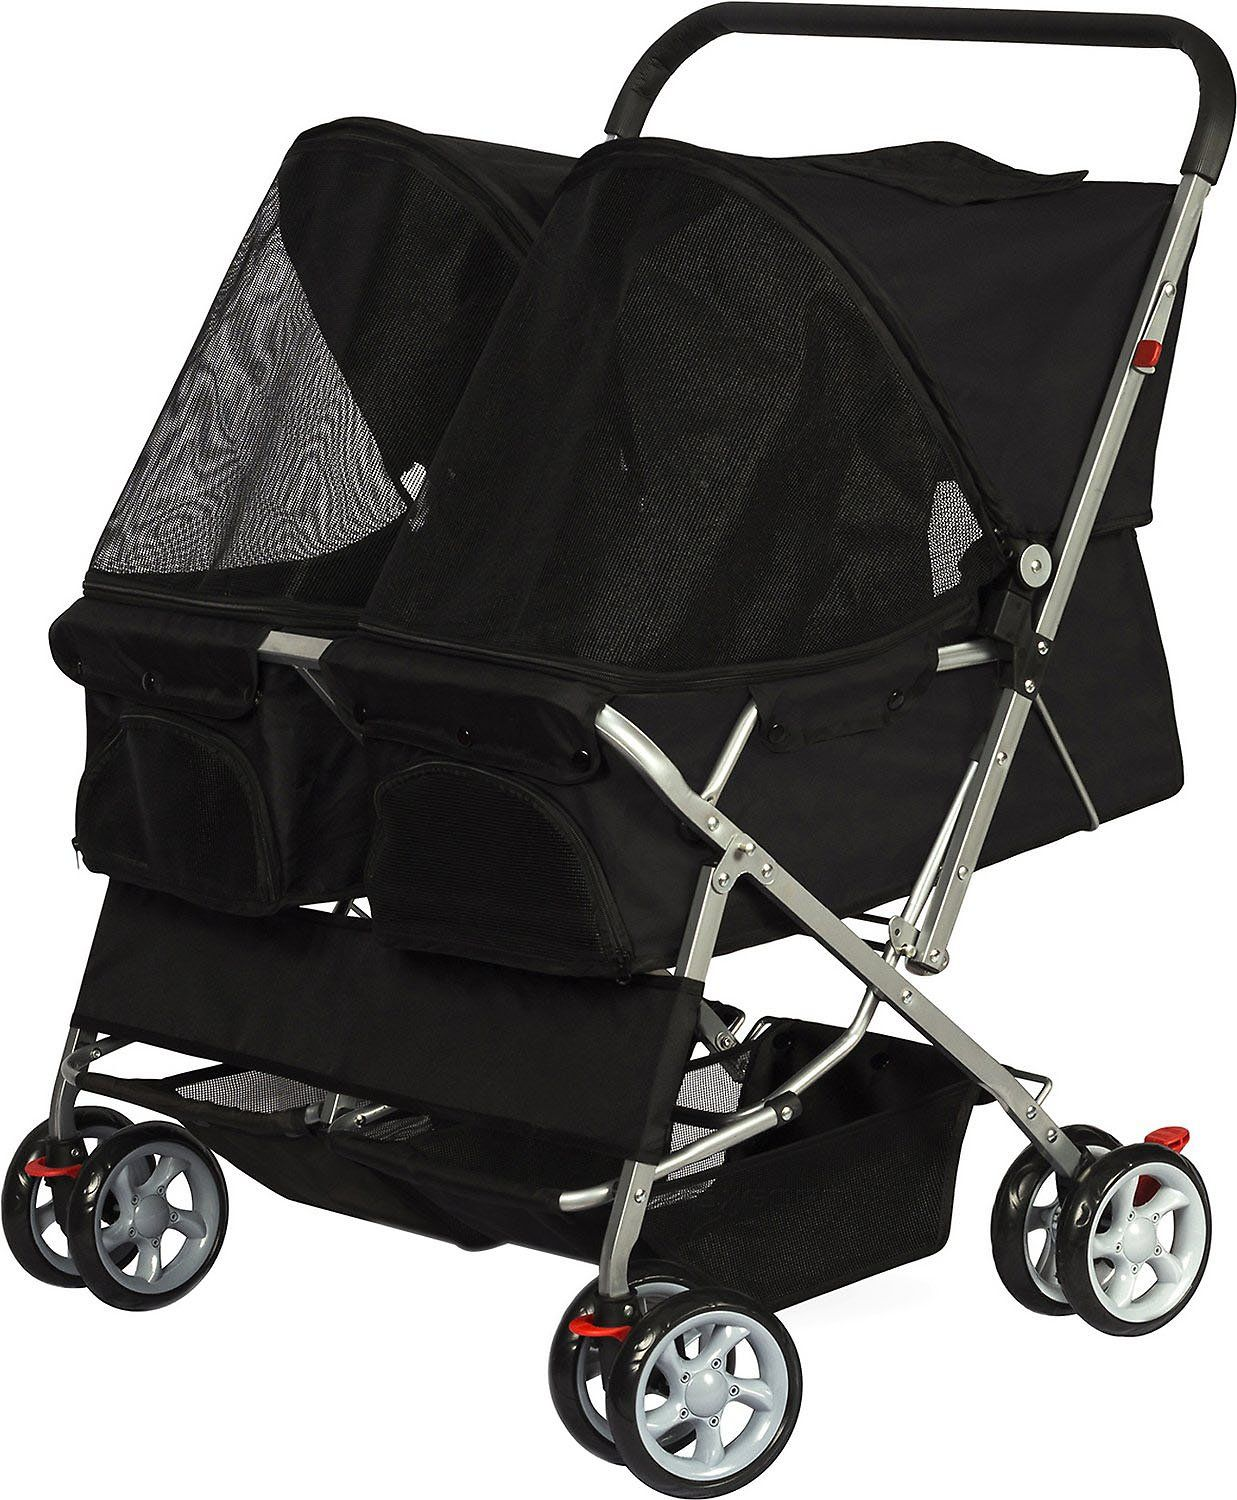 paws and pals stroller chewy